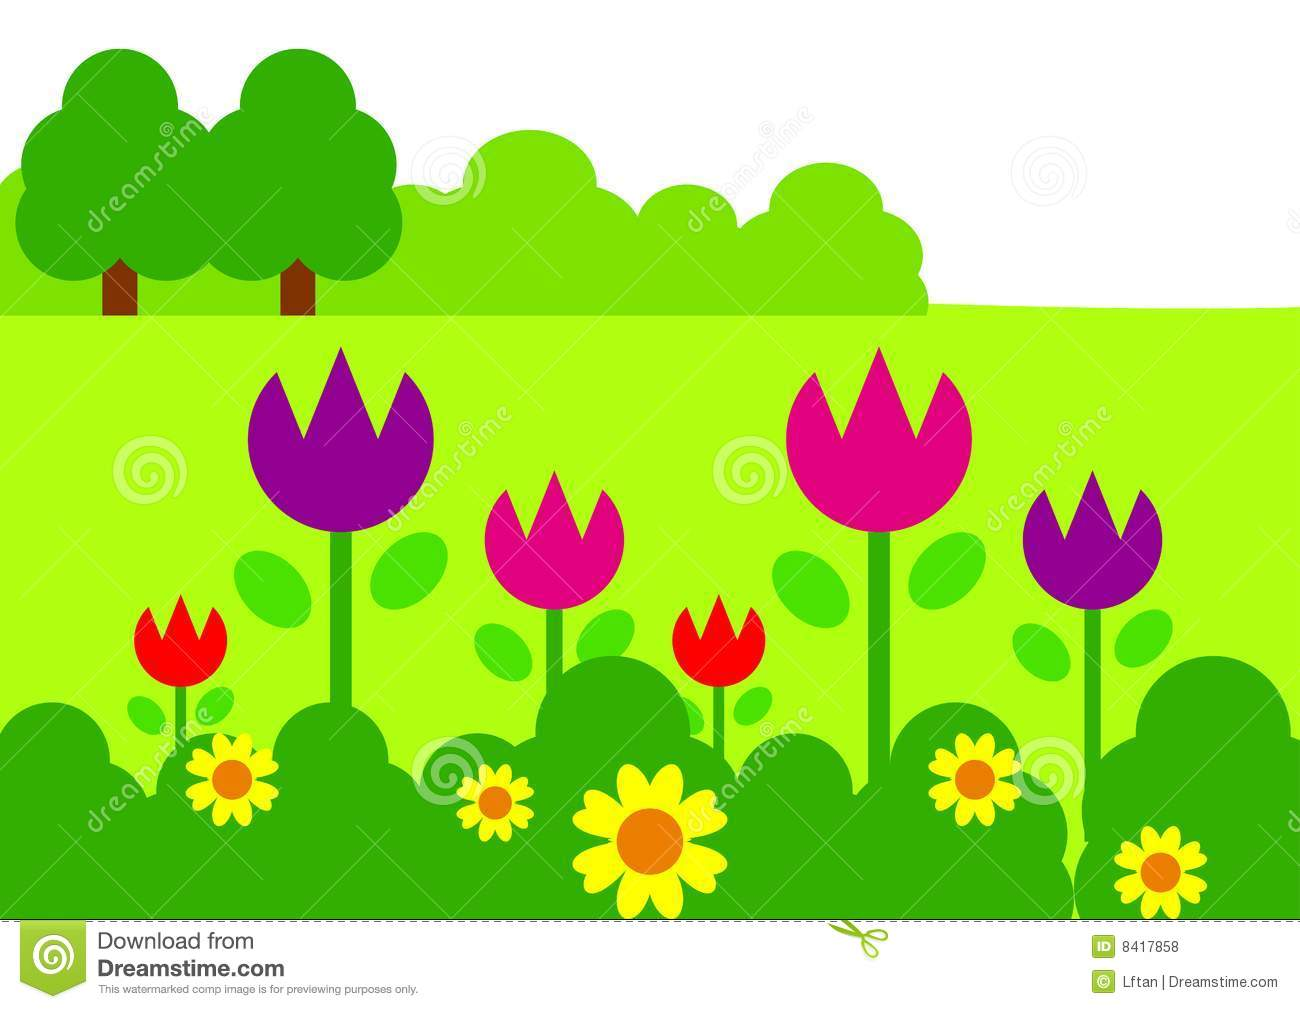 free garden design clipart - photo #39